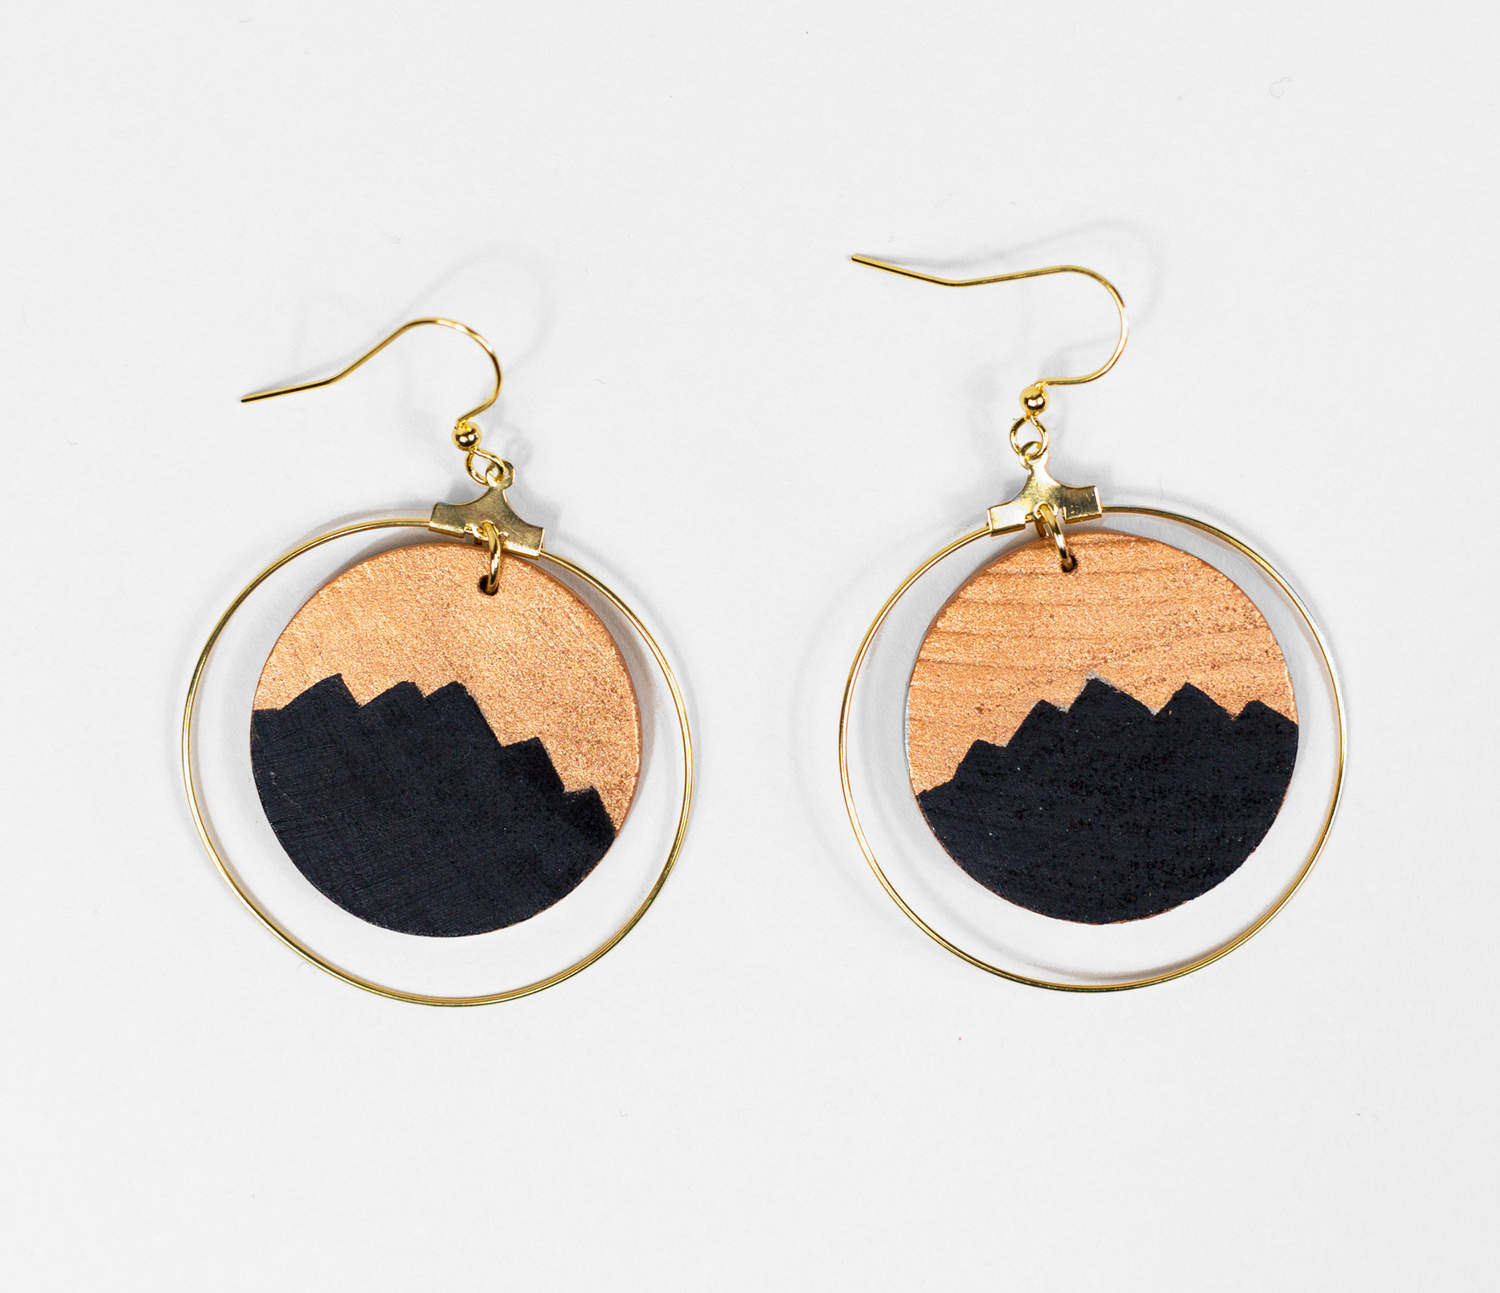 halcyon coconuts jewelry products image unique women coconut nice hadley statement earrings s cute